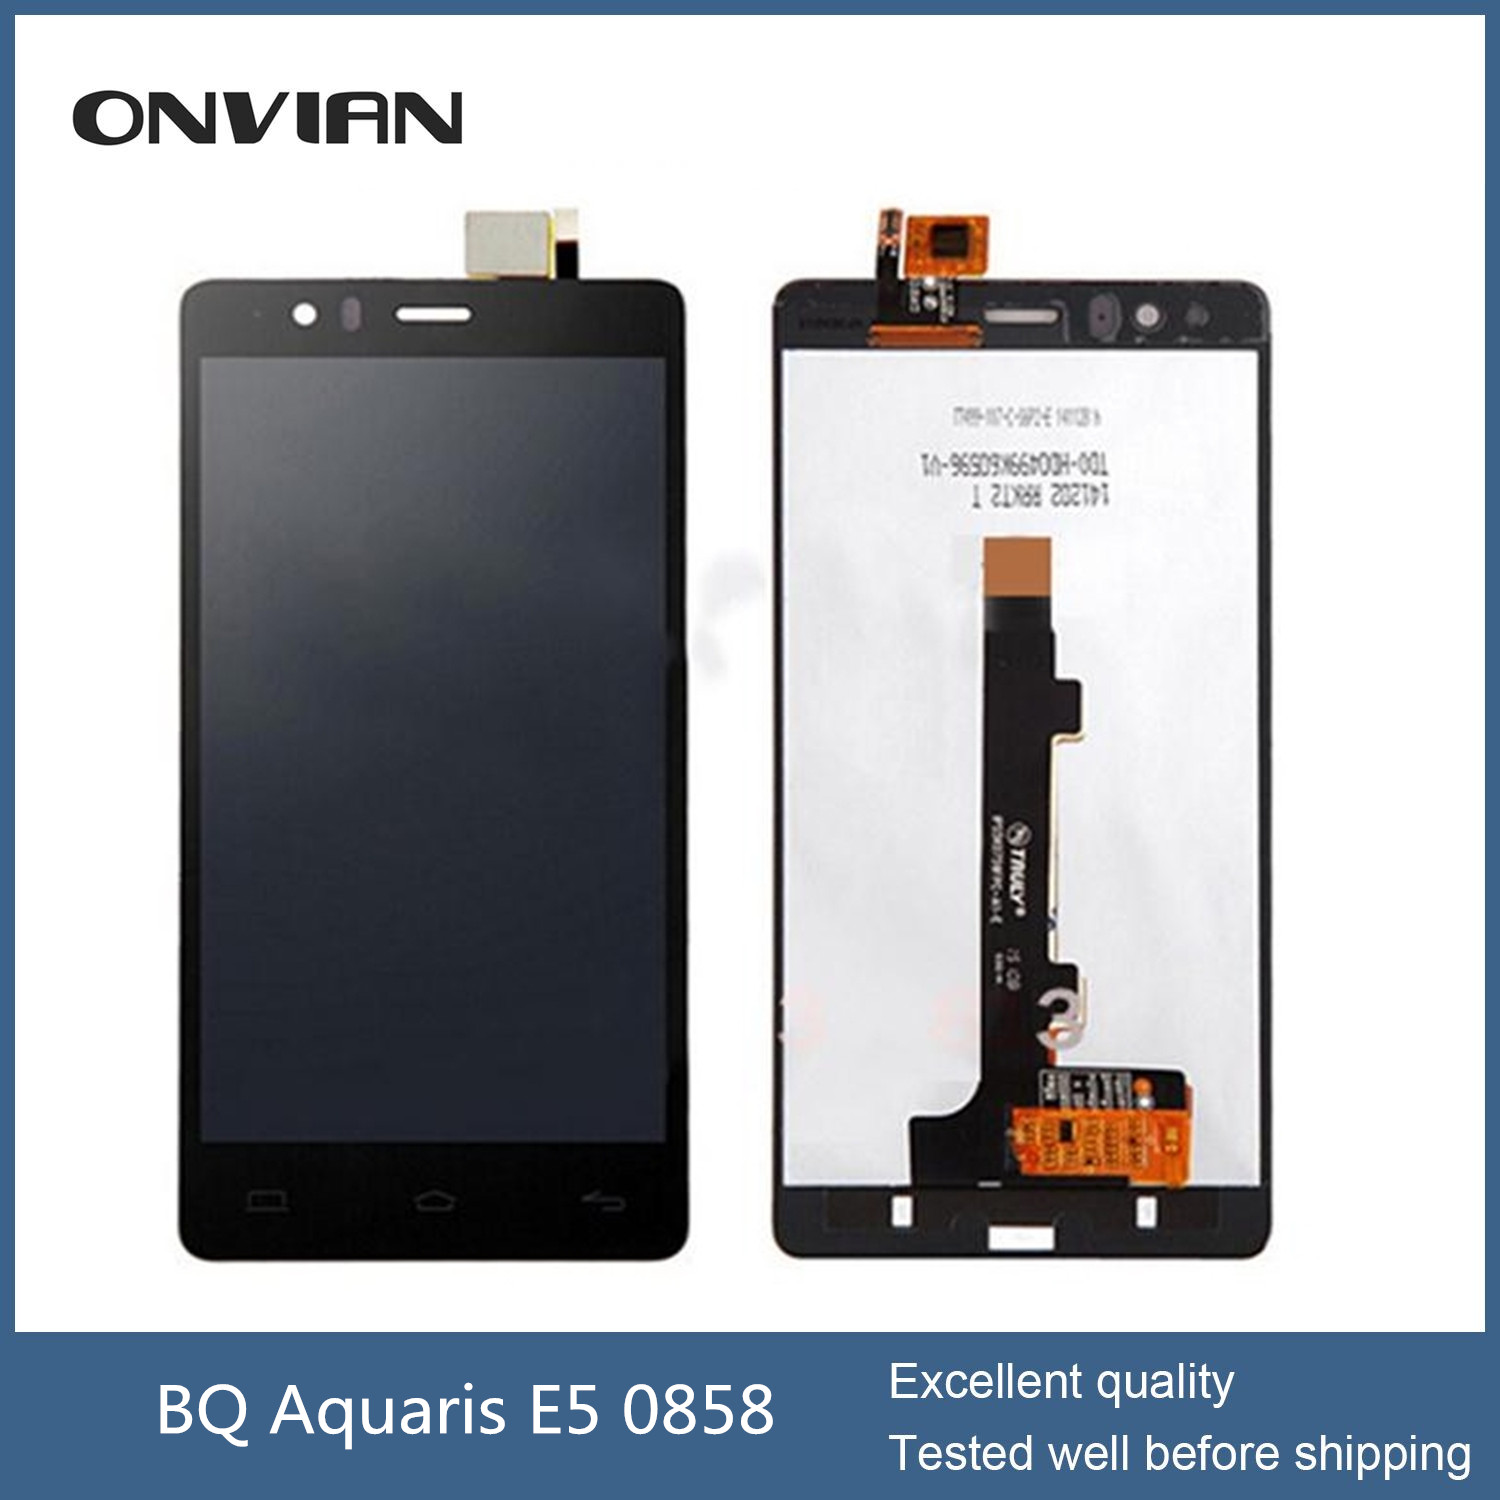 BQ Aquaris E5 TFT5K0858FPC-A1-E LCD Display Touch Screen Digitizer Assembly Aquaris E5 0858 lcd Replacement 5K0858/5k0760/5K0759